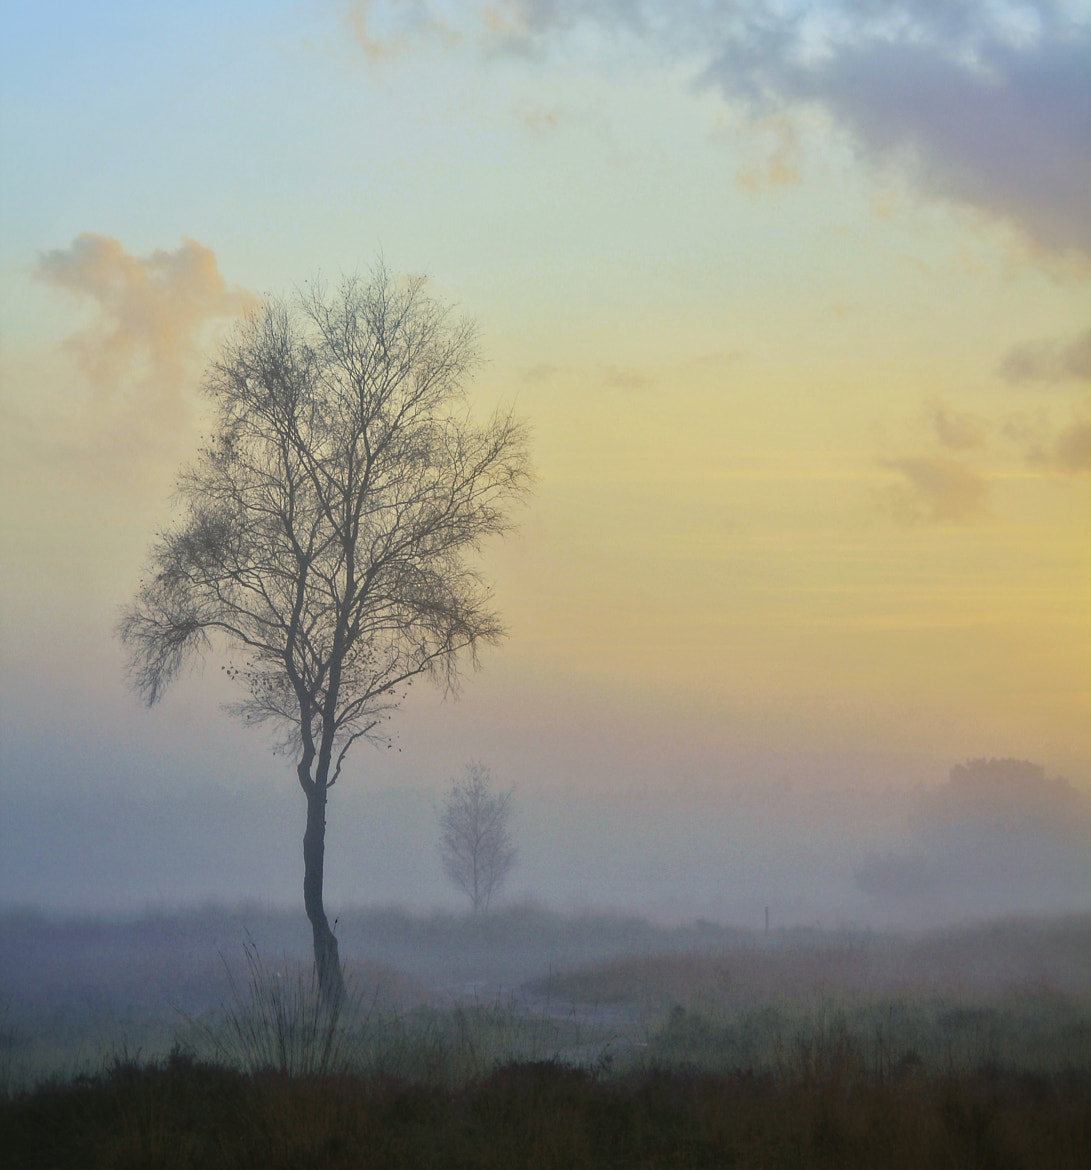 Photograph Tree in the mist by Joost Lagerweij on 500px